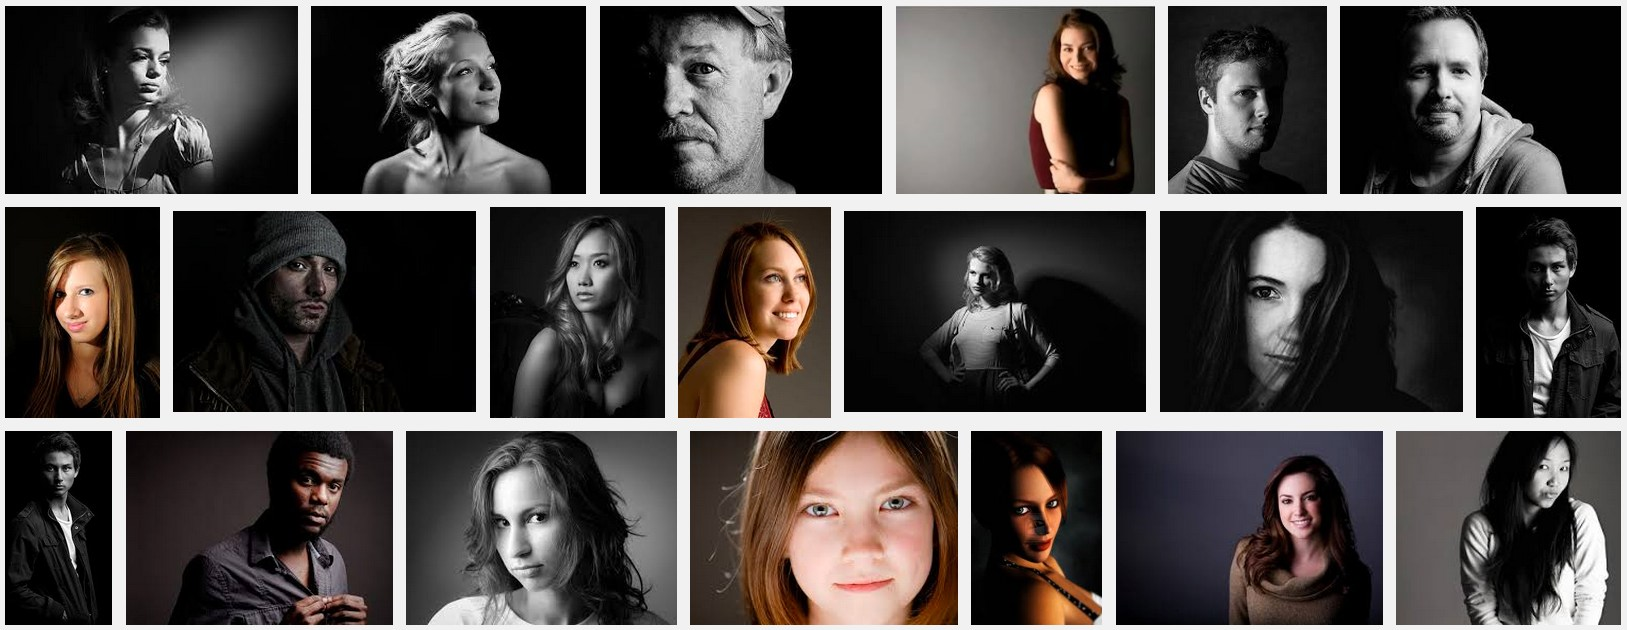 Assignment Eight One Light Portrait Project 52 August 2014 2015 Group Avedon Lighting Diagram Portraits Blankwalls